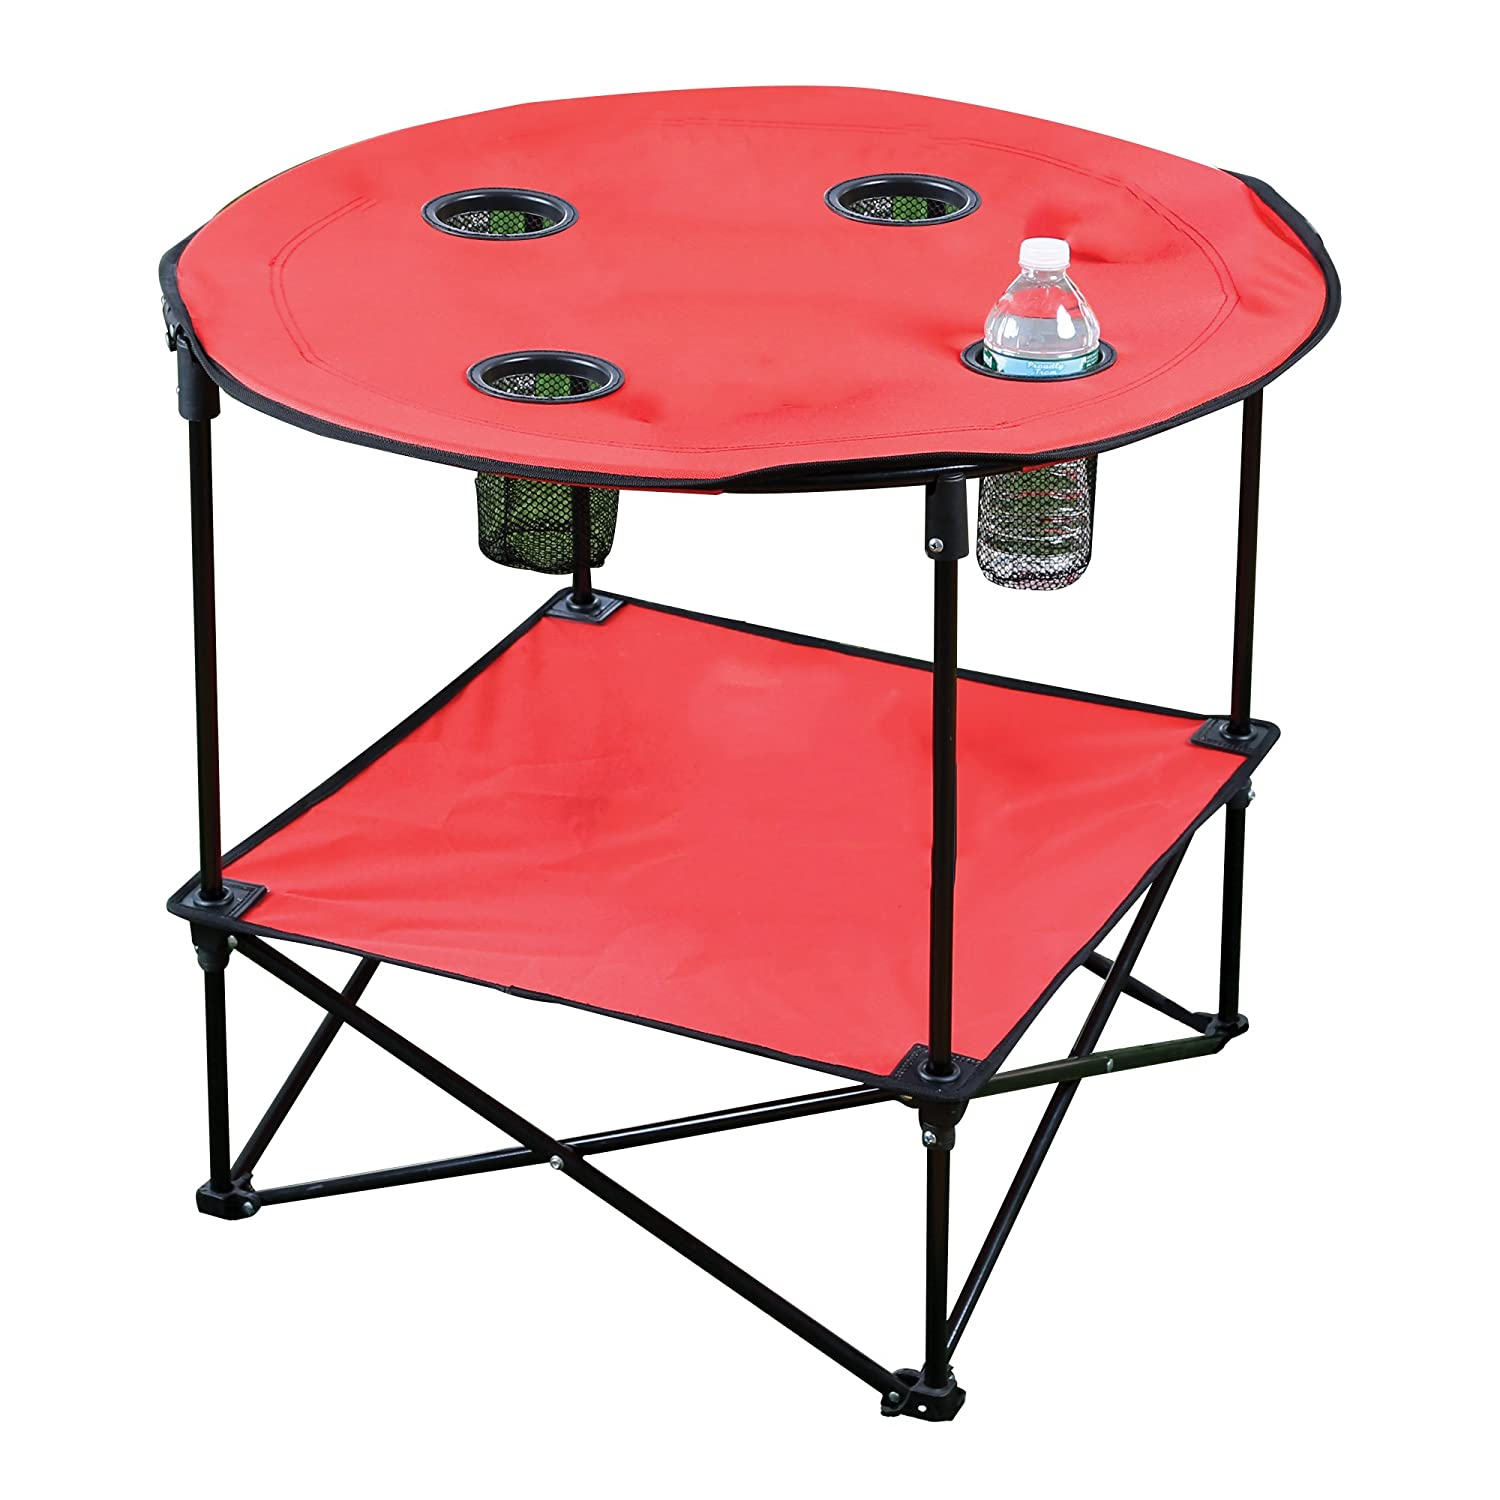 Games Portable Camping Side Table for Outdoor Picnic Beach Camp and Patio Tables Folding with Carry Case for Travel and Storage